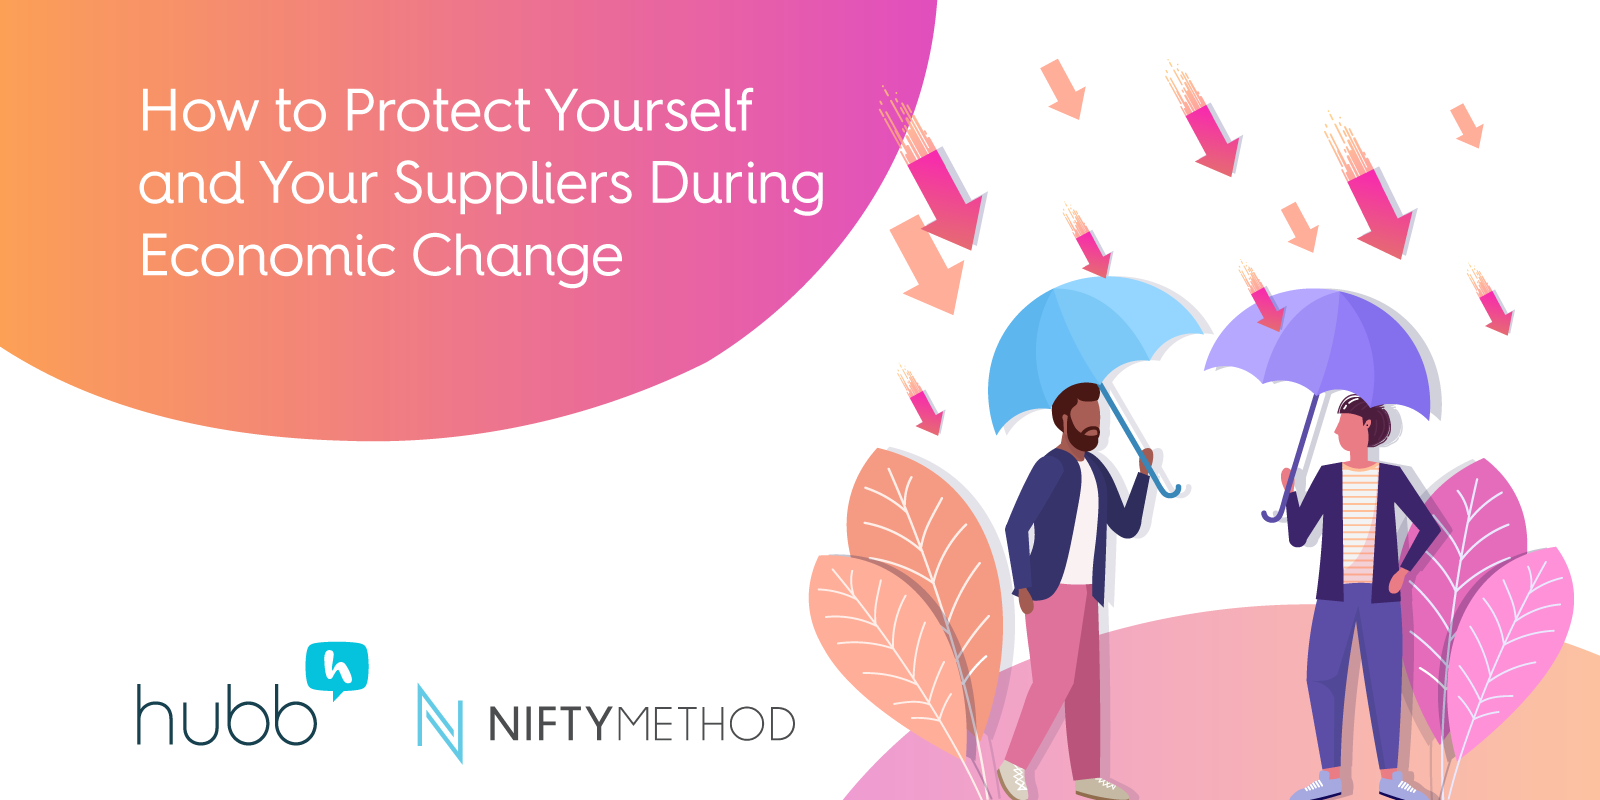 How to Protect Yourself and Your Suppliers During Economic Change